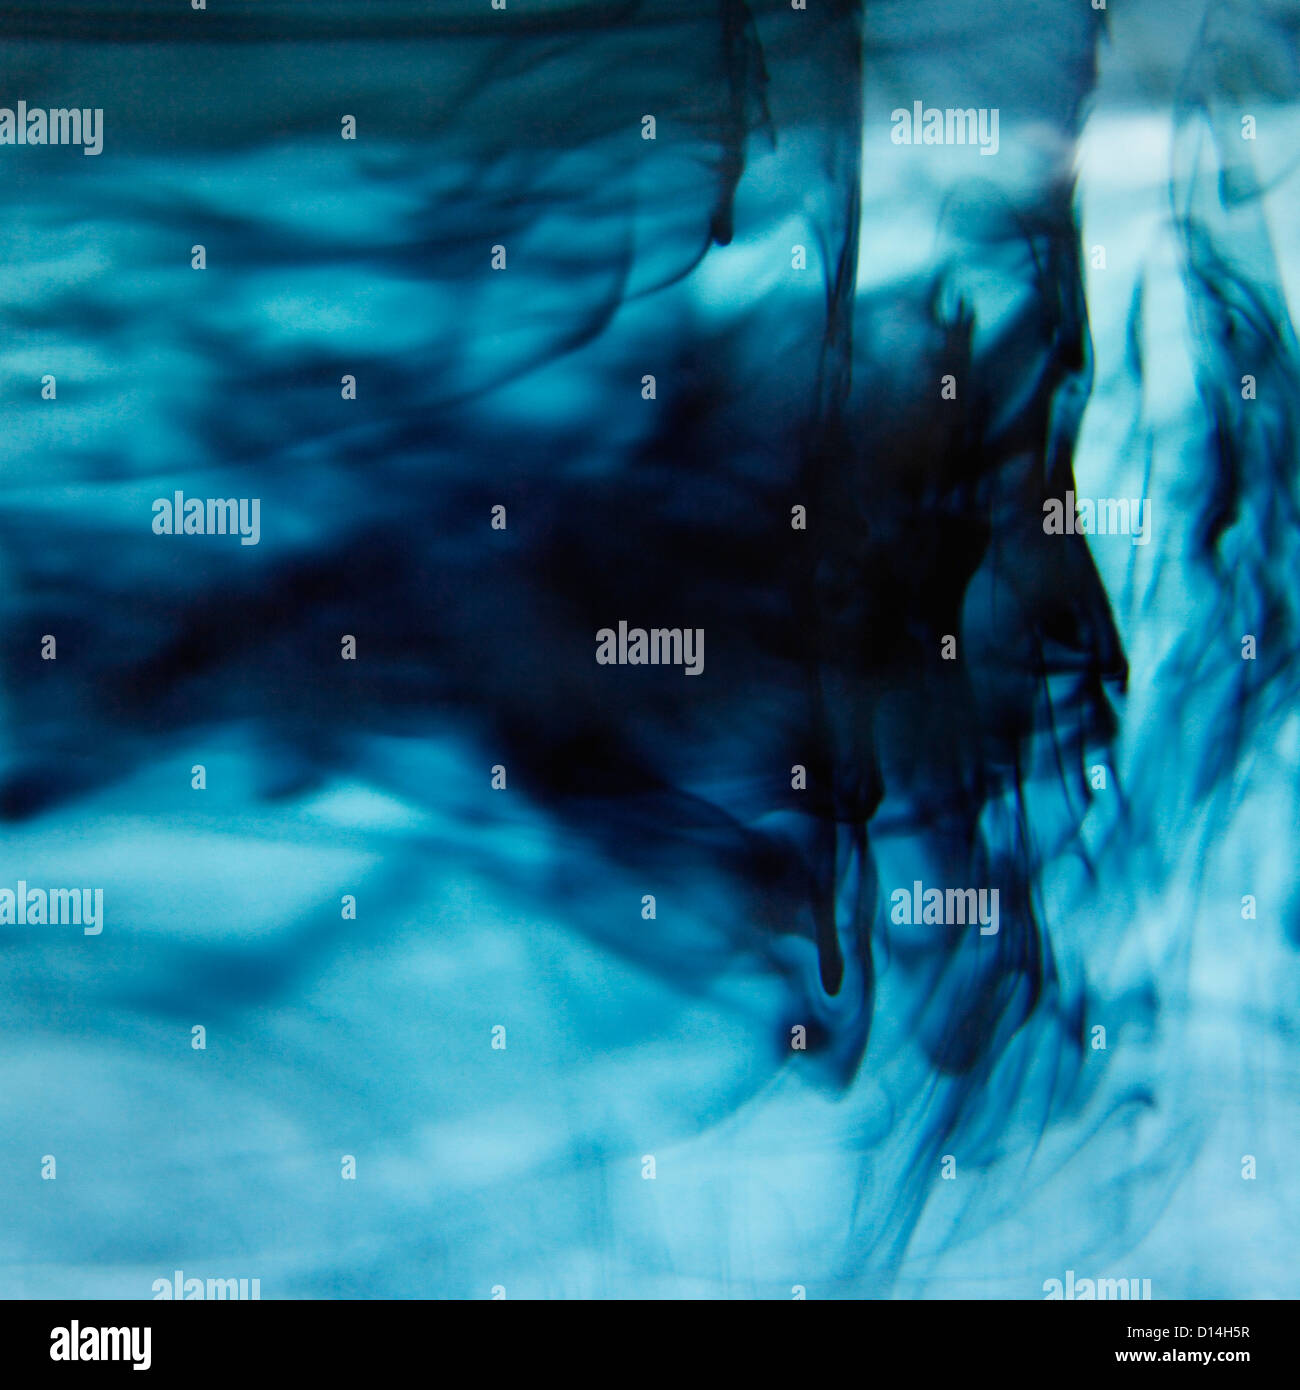 Blue ink swirling in liquid - Stock Image